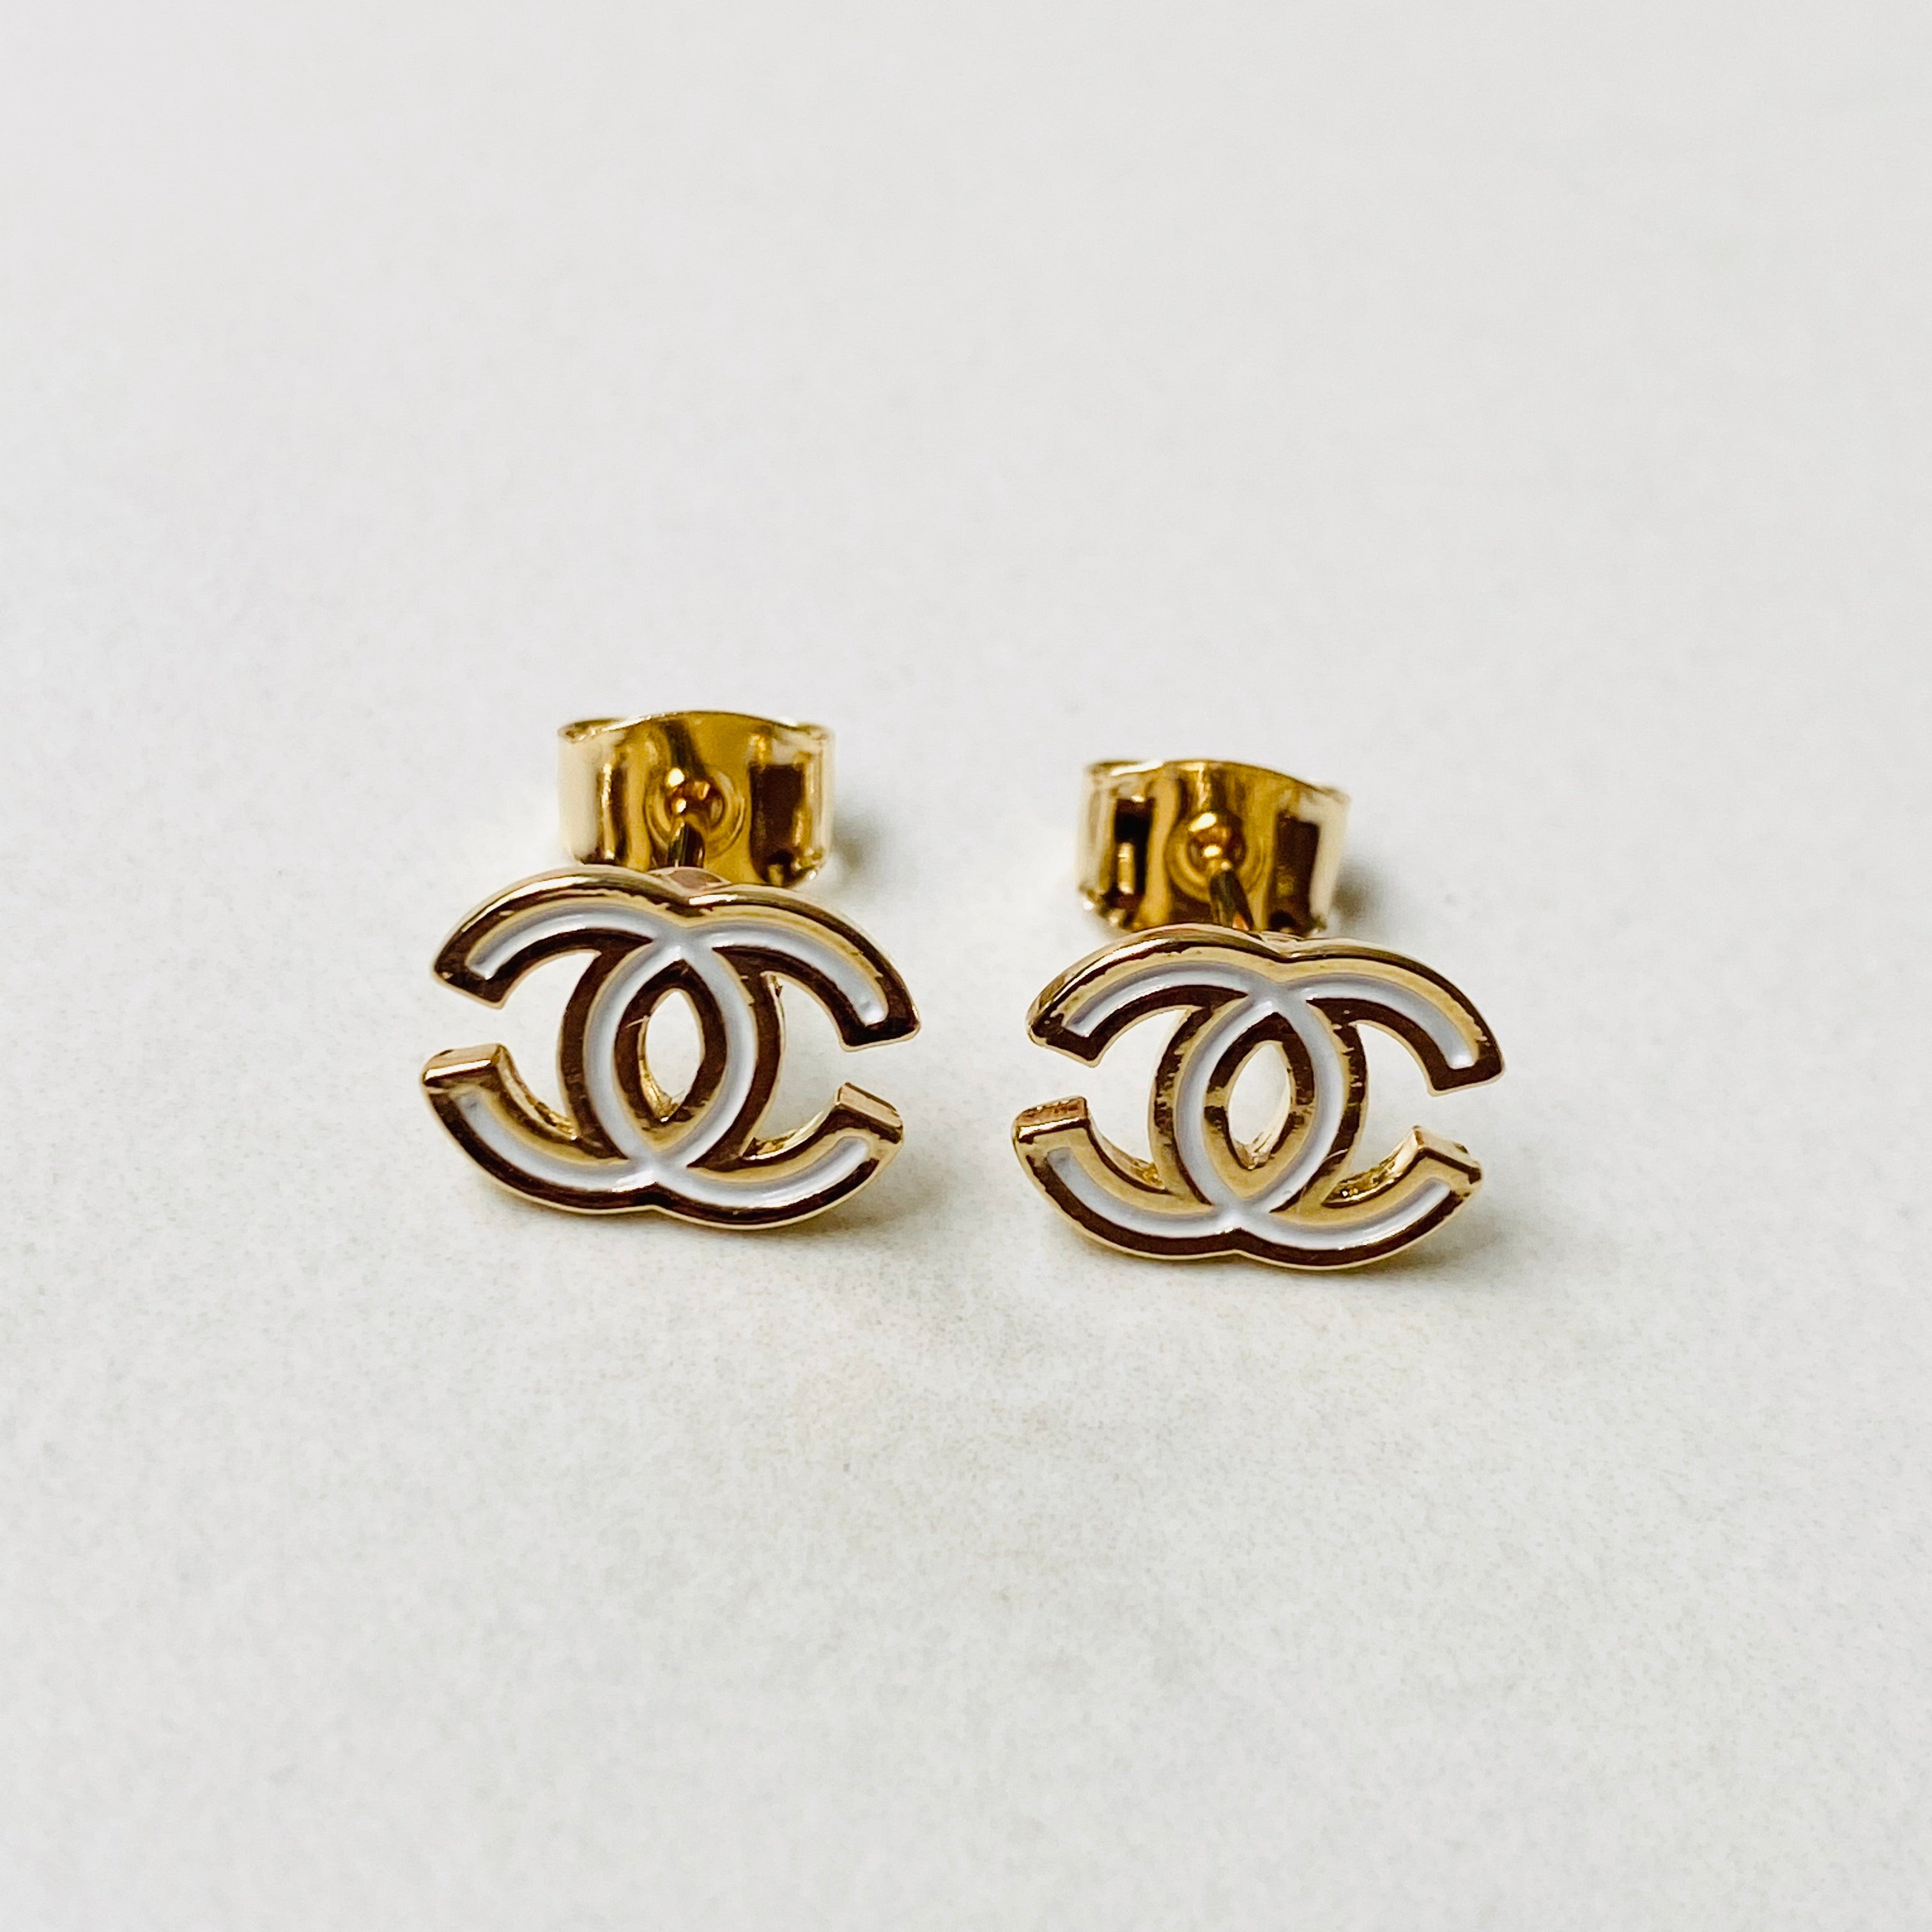 CC Stud Earrings